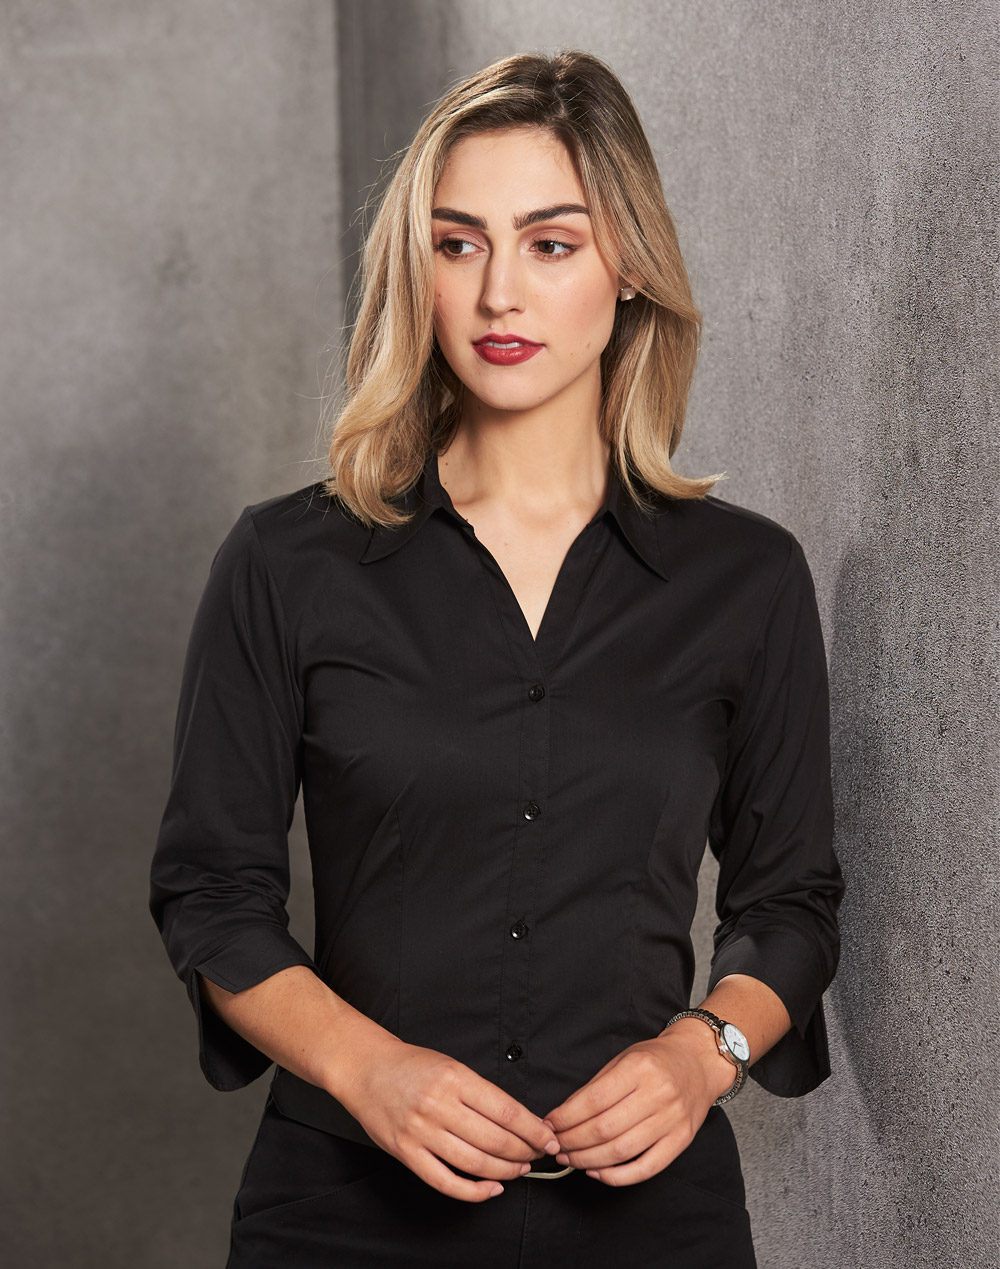 BS07Q Women's Teflon Executive 3/4 Sleeve Shirt